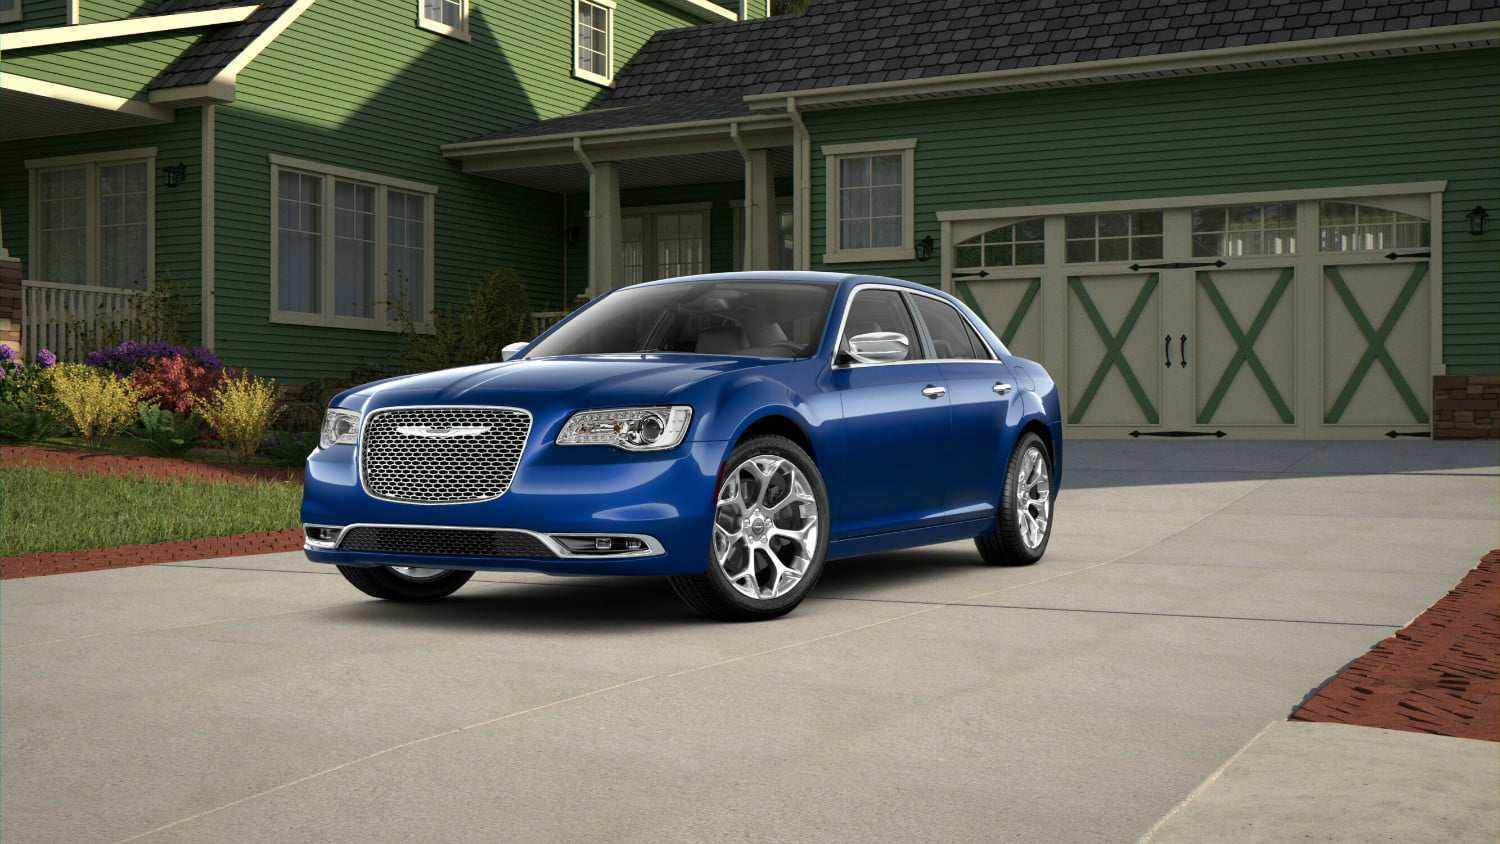 46 New 2019 Chrysler 300 Release Date Images for 2019 Chrysler 300 Release Date